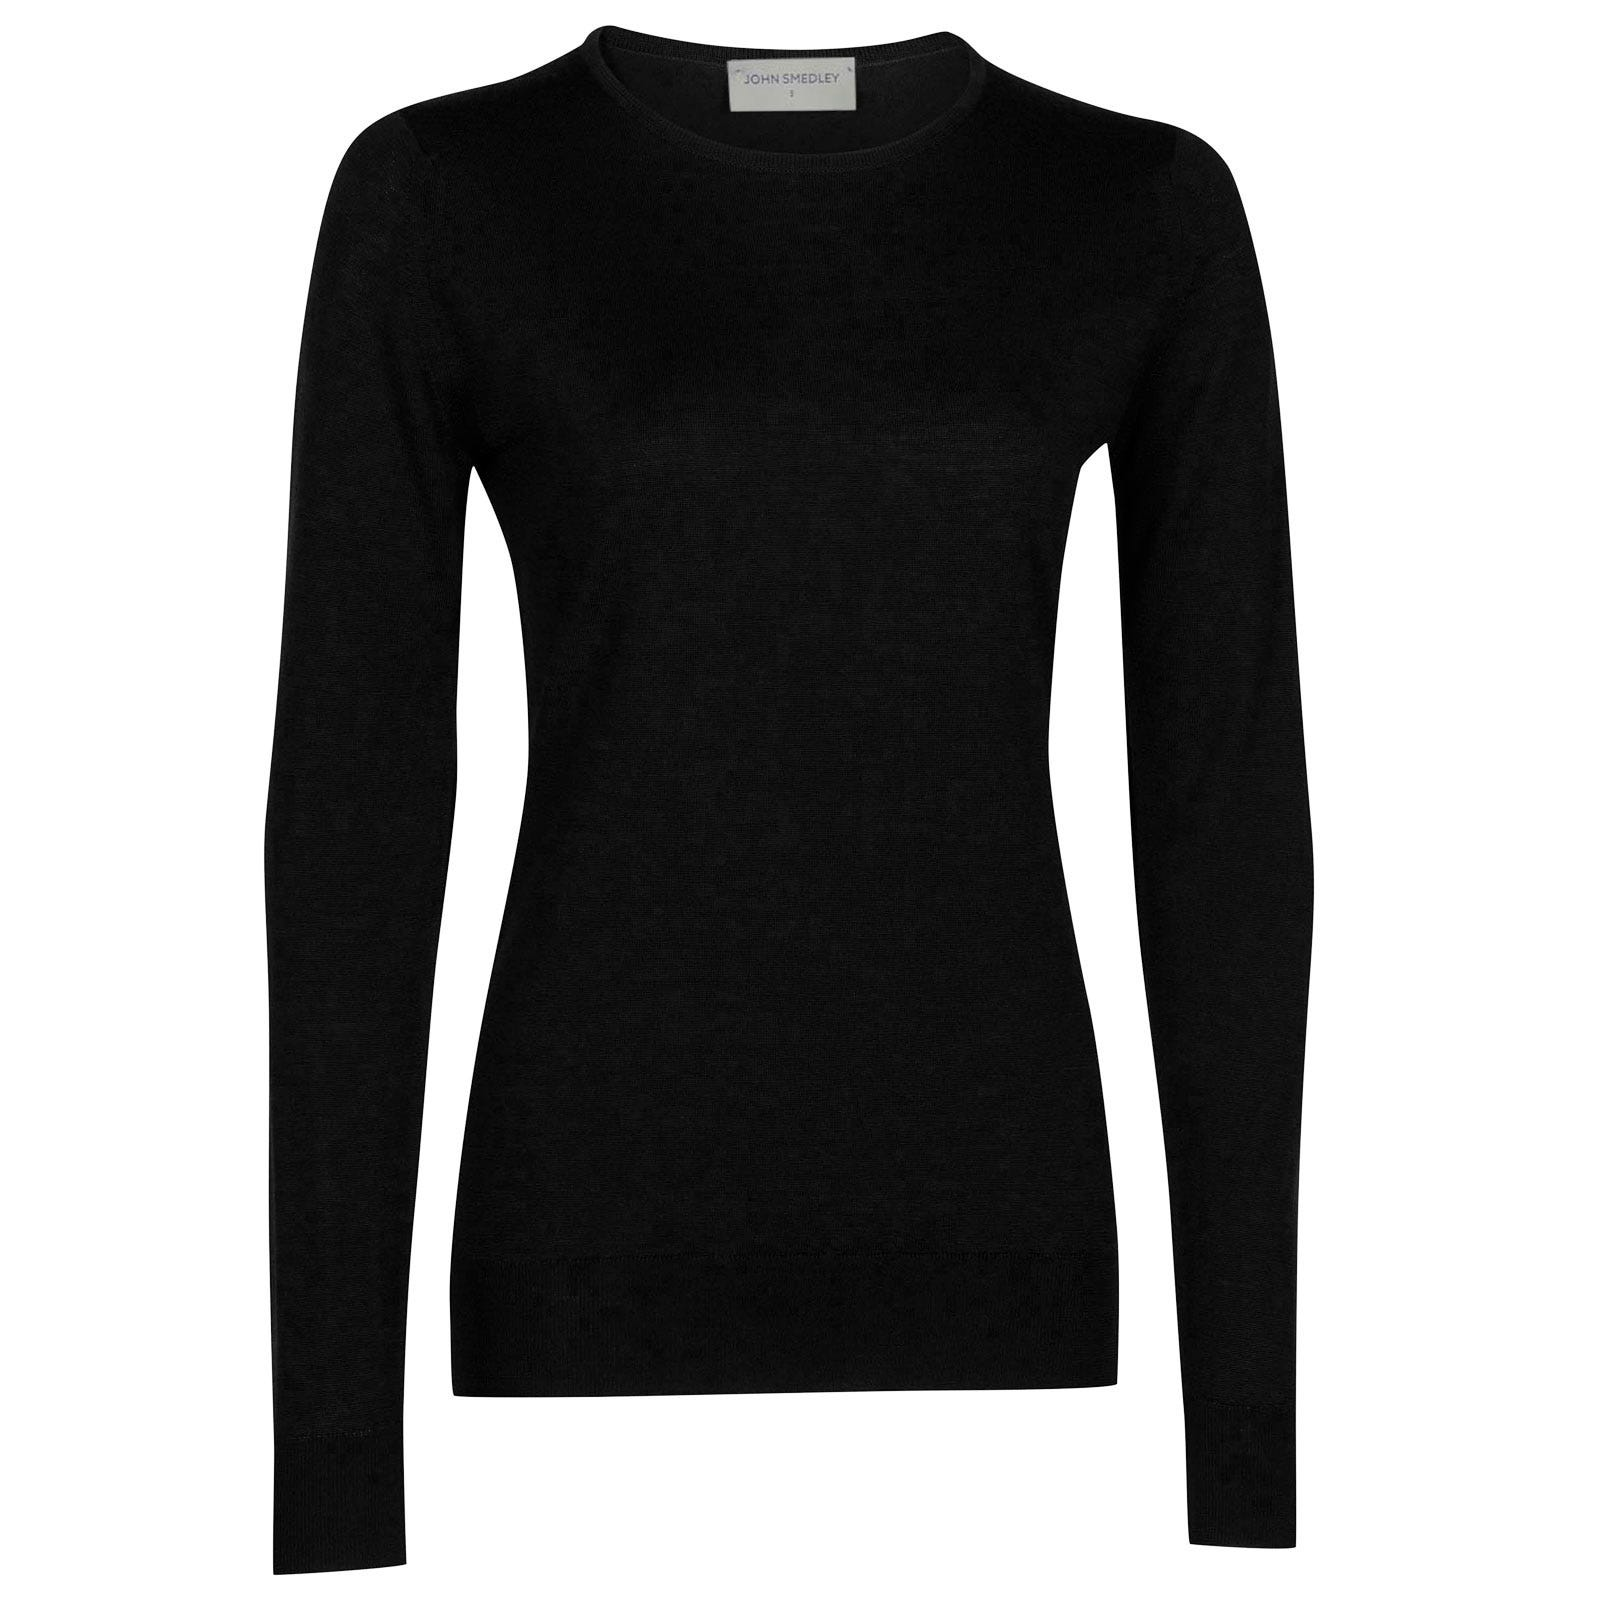 John Smedley geranium Merino Wool Sweater in Black-M